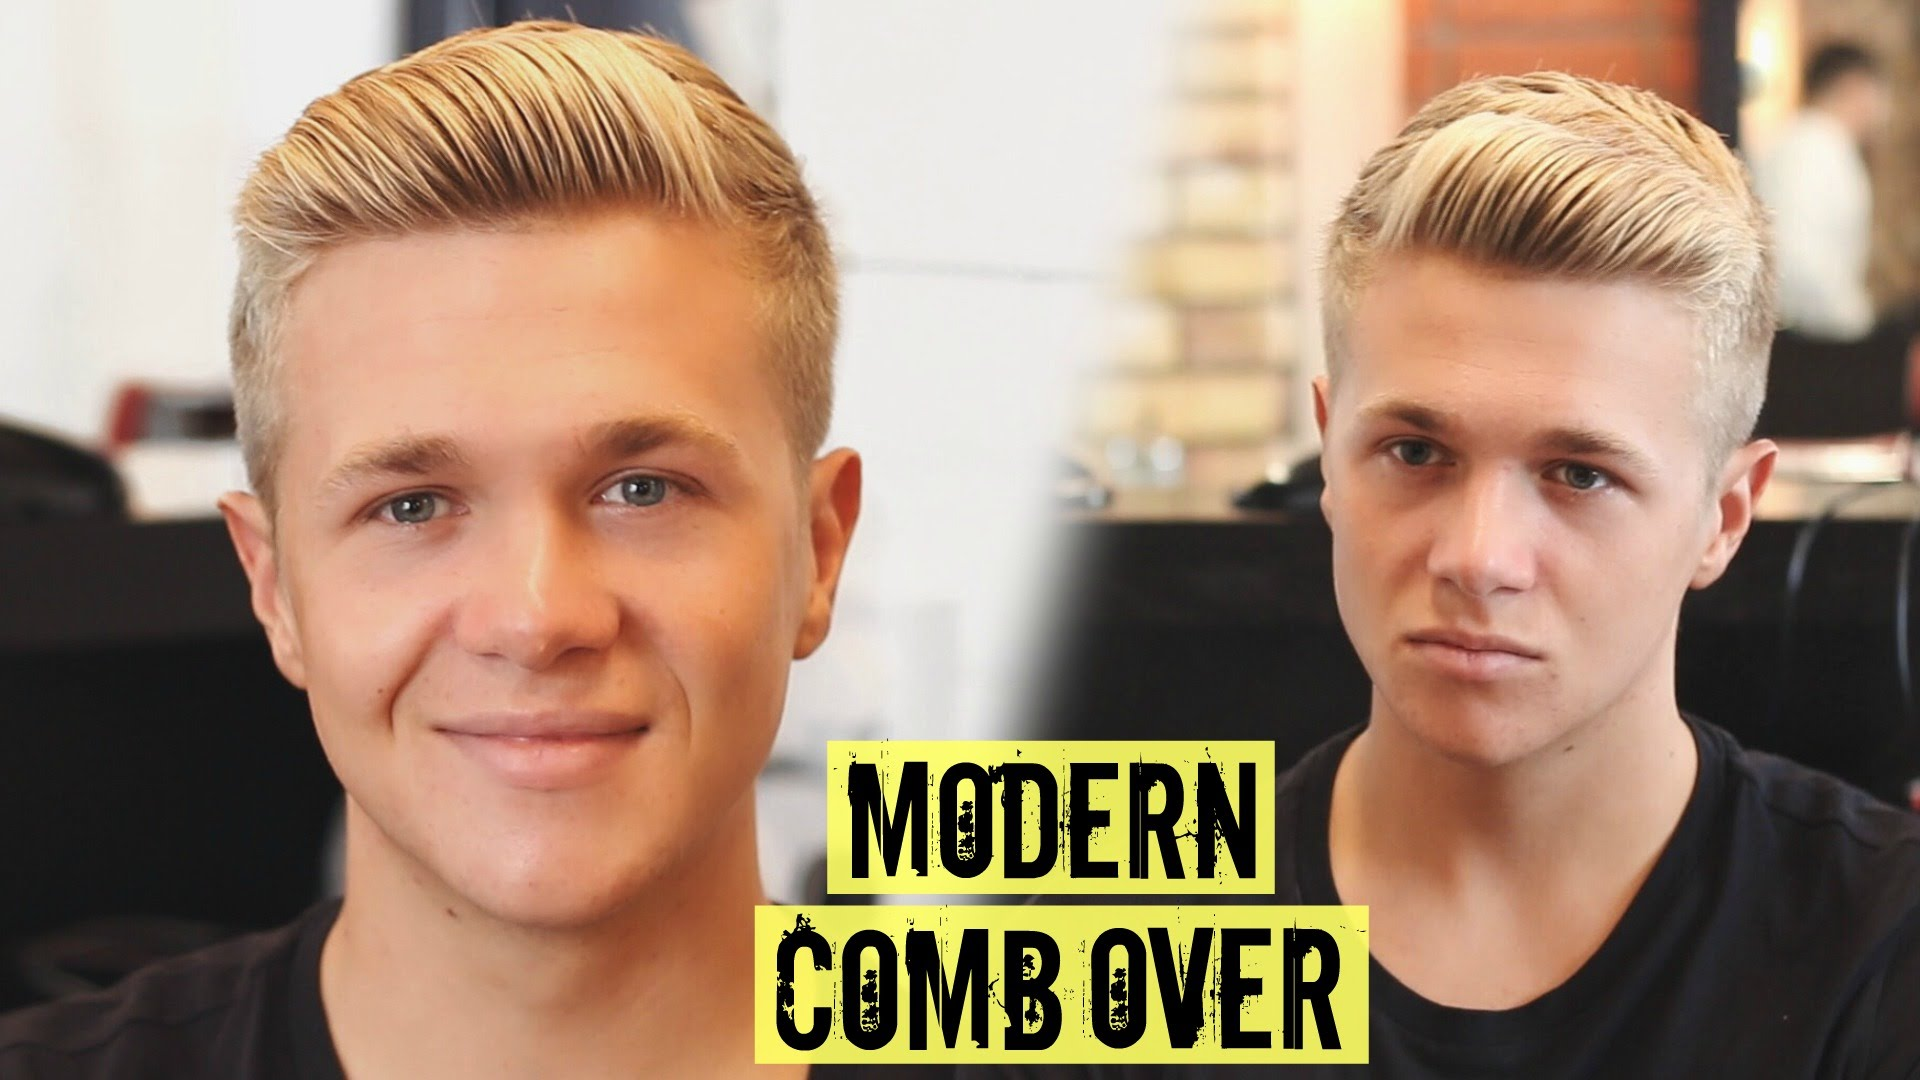 Comb Over Haircut | Hair Parting Comb | Comb Over Fade